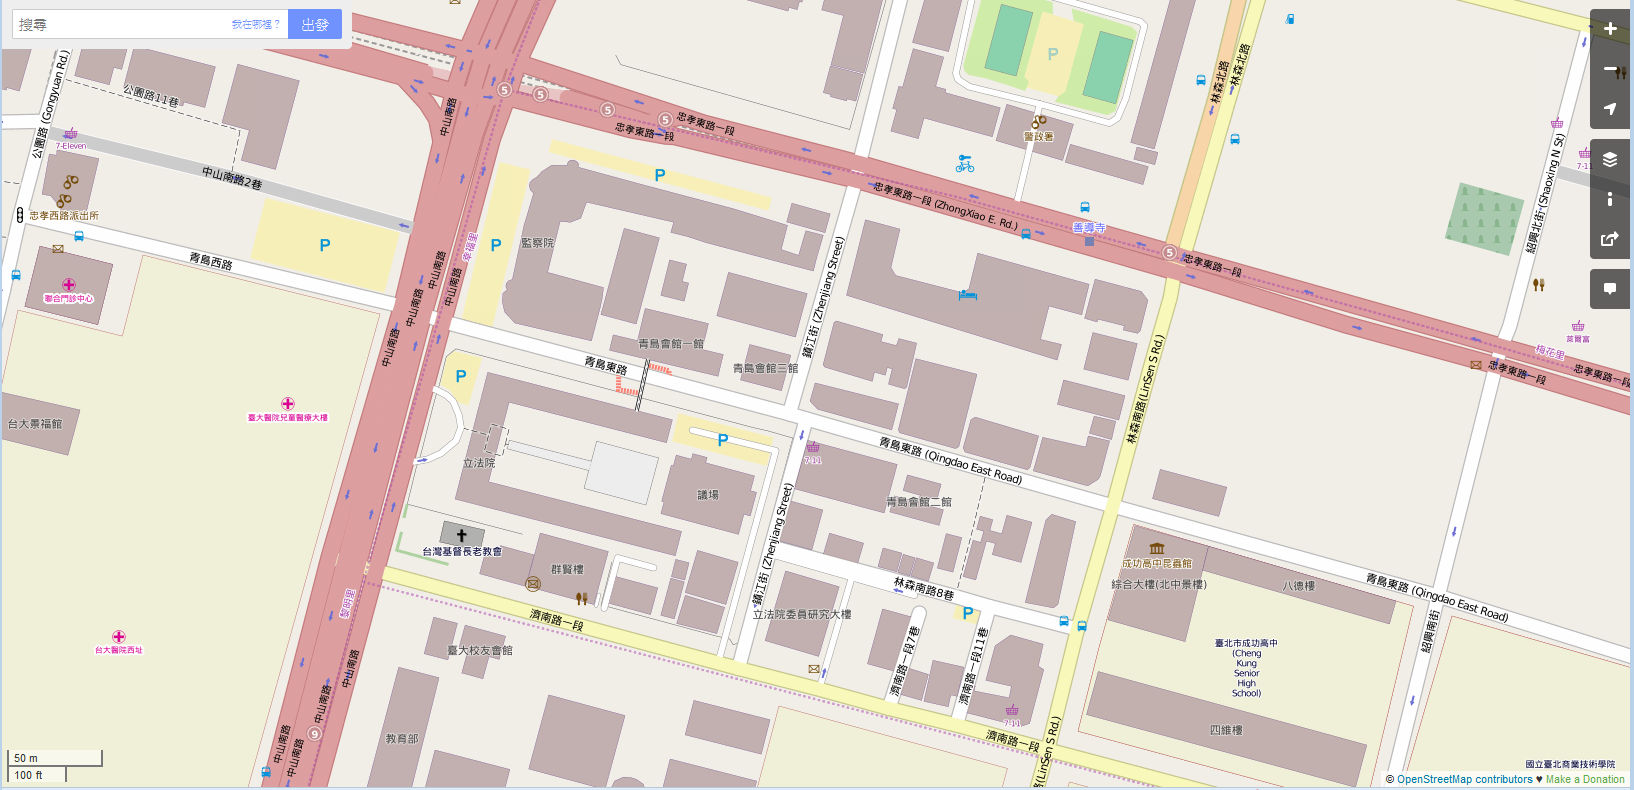 OpenStreetMap-legislative-yuan